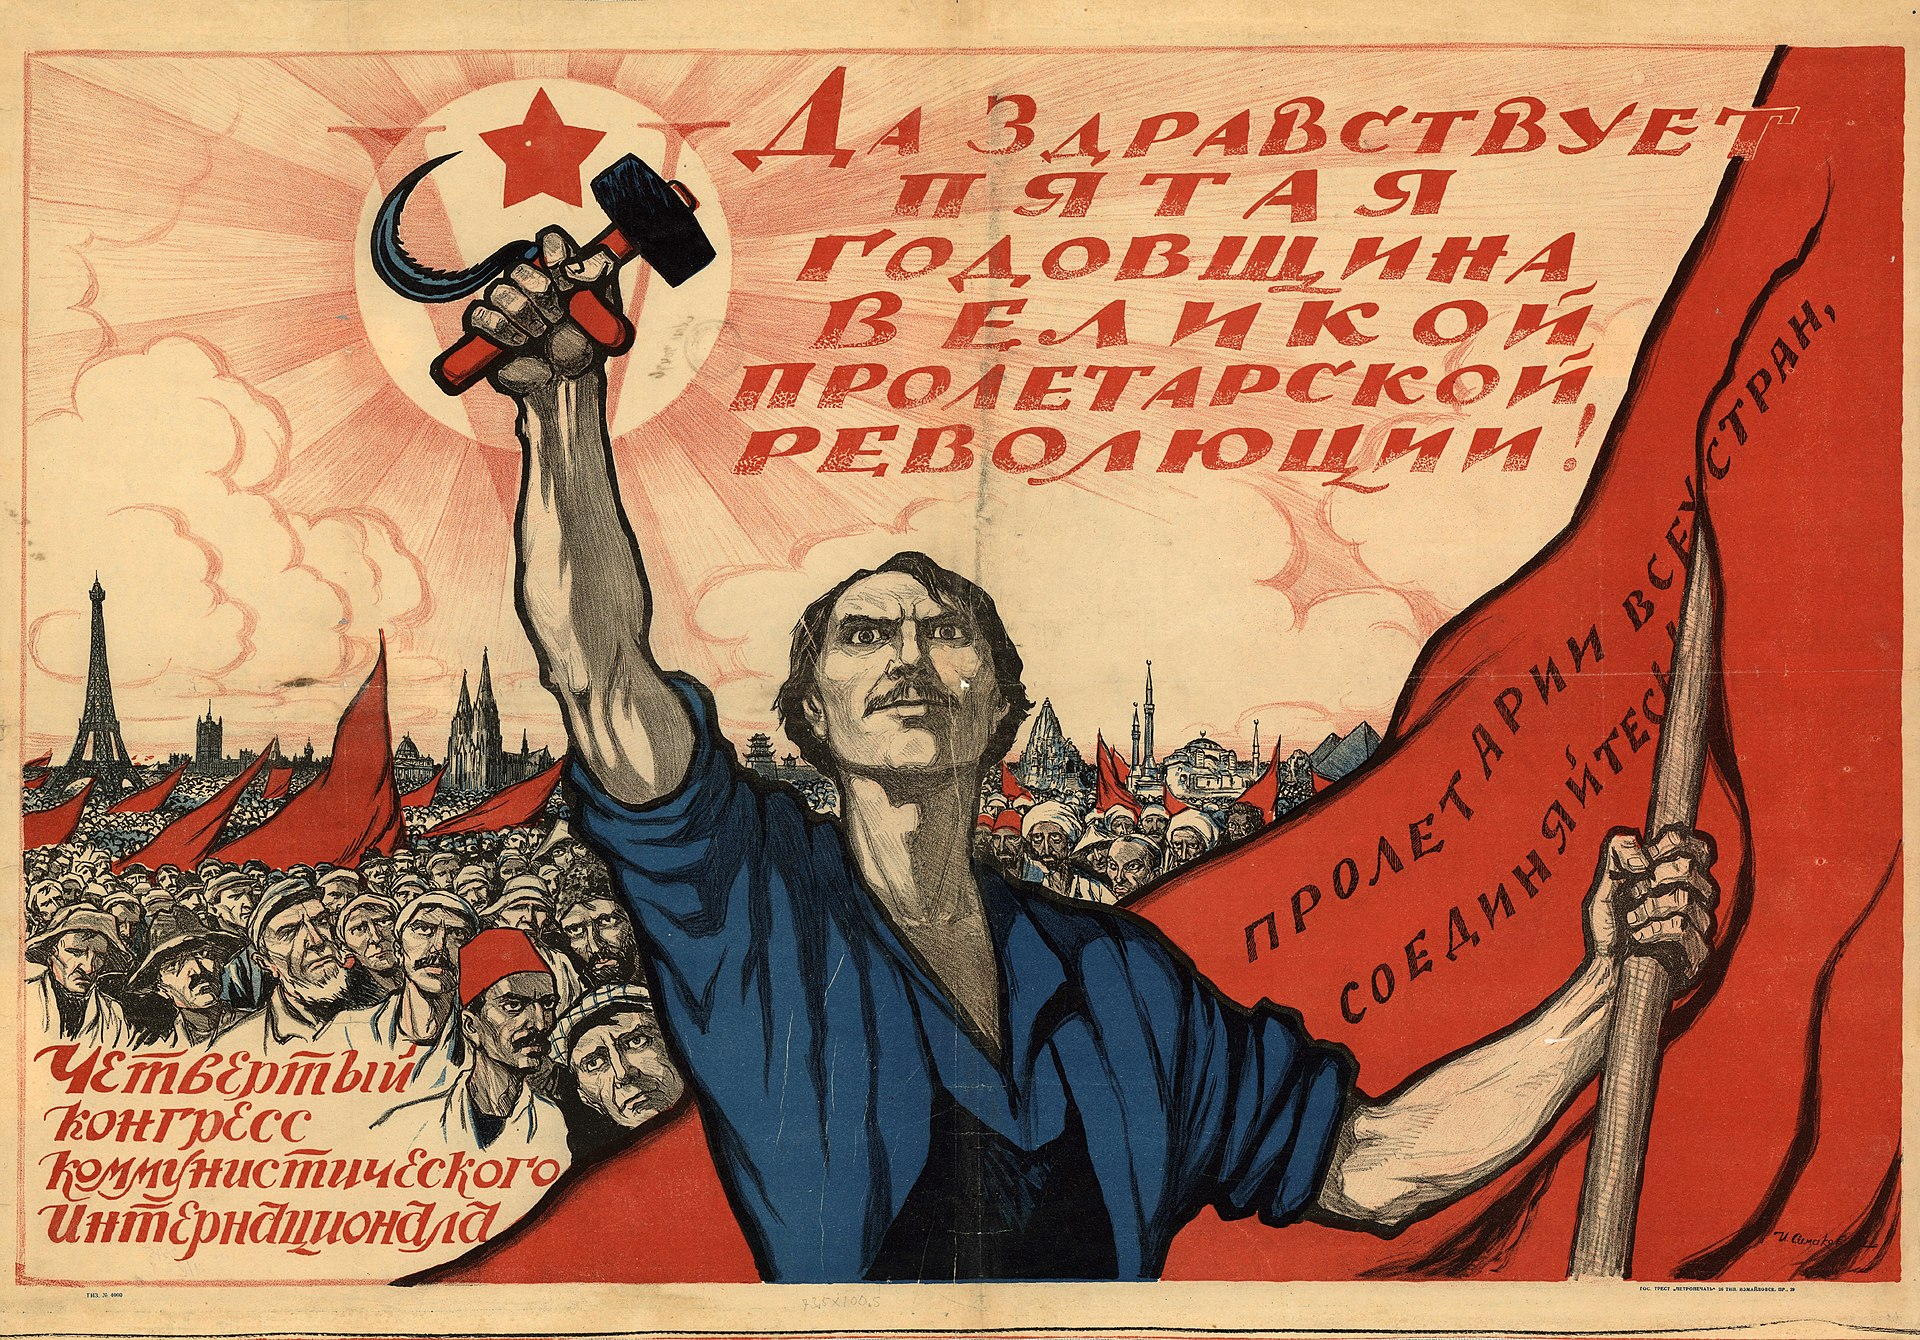 Poster commemorating the 5th anniversary of the Russian Revolution and the 4th Congress of the Communist International.